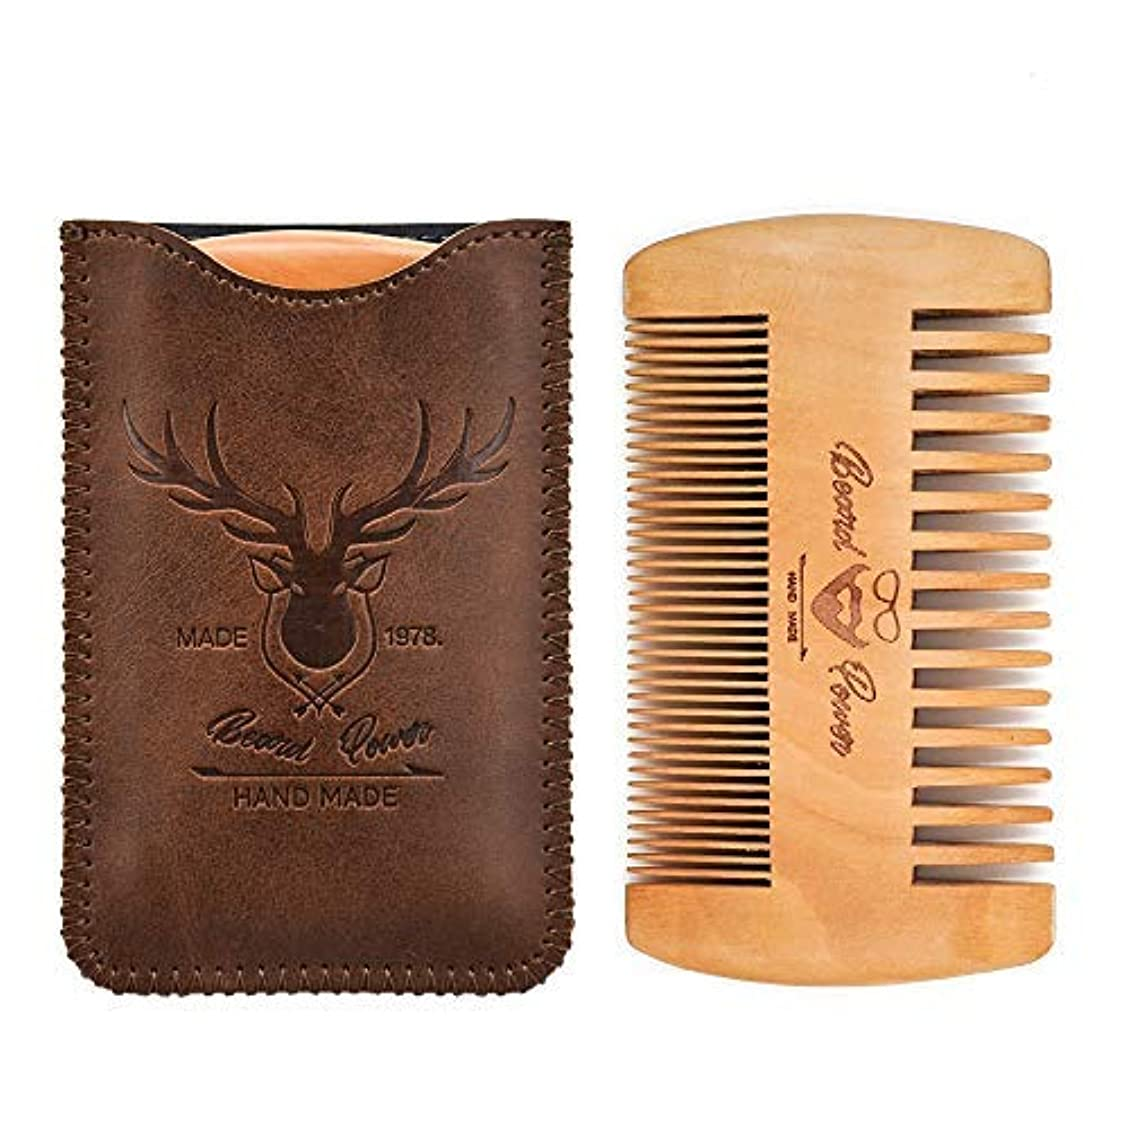 2019 Version Wooden Beard Comb & Durable Case for Men with Sexy Beard, Fine & Coarse Teeth, Pocket Comb for Beards...